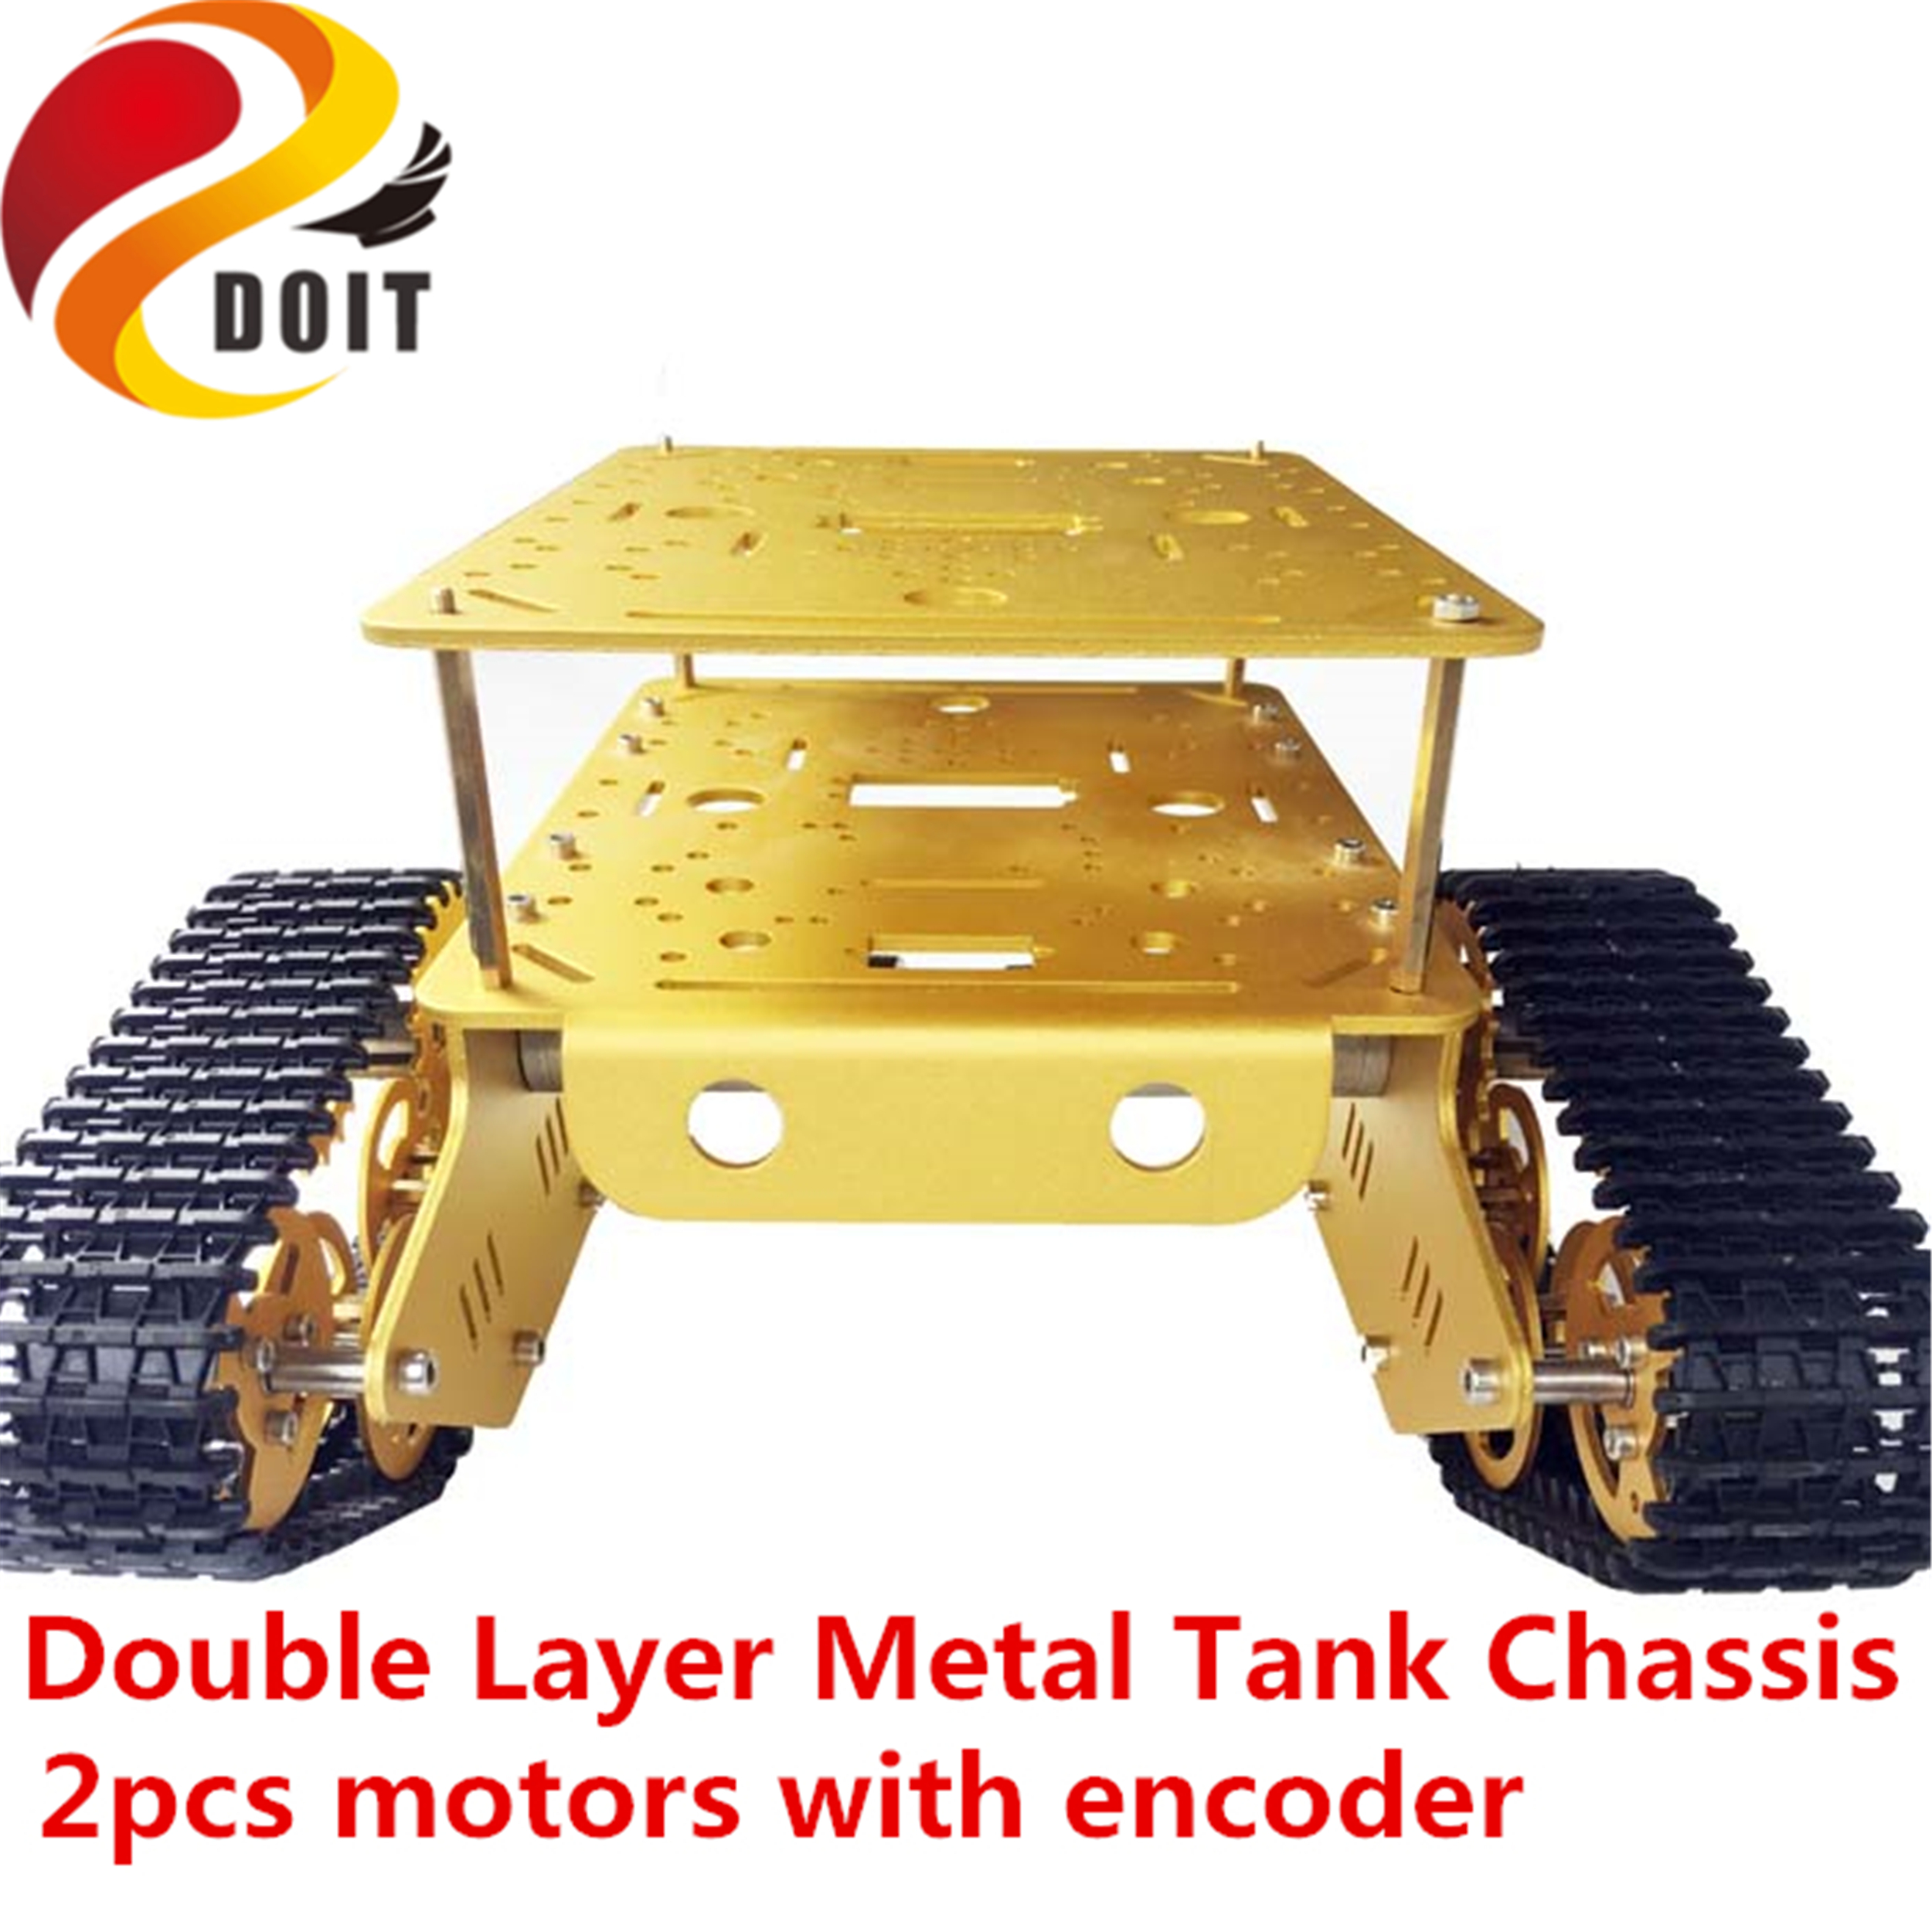 SZDOIT TD300 Double Layer Metal Tank Chassis Kit+ 9/12V Motor With Encoder Tracked Car Robot Platform DIY For Arduino Education